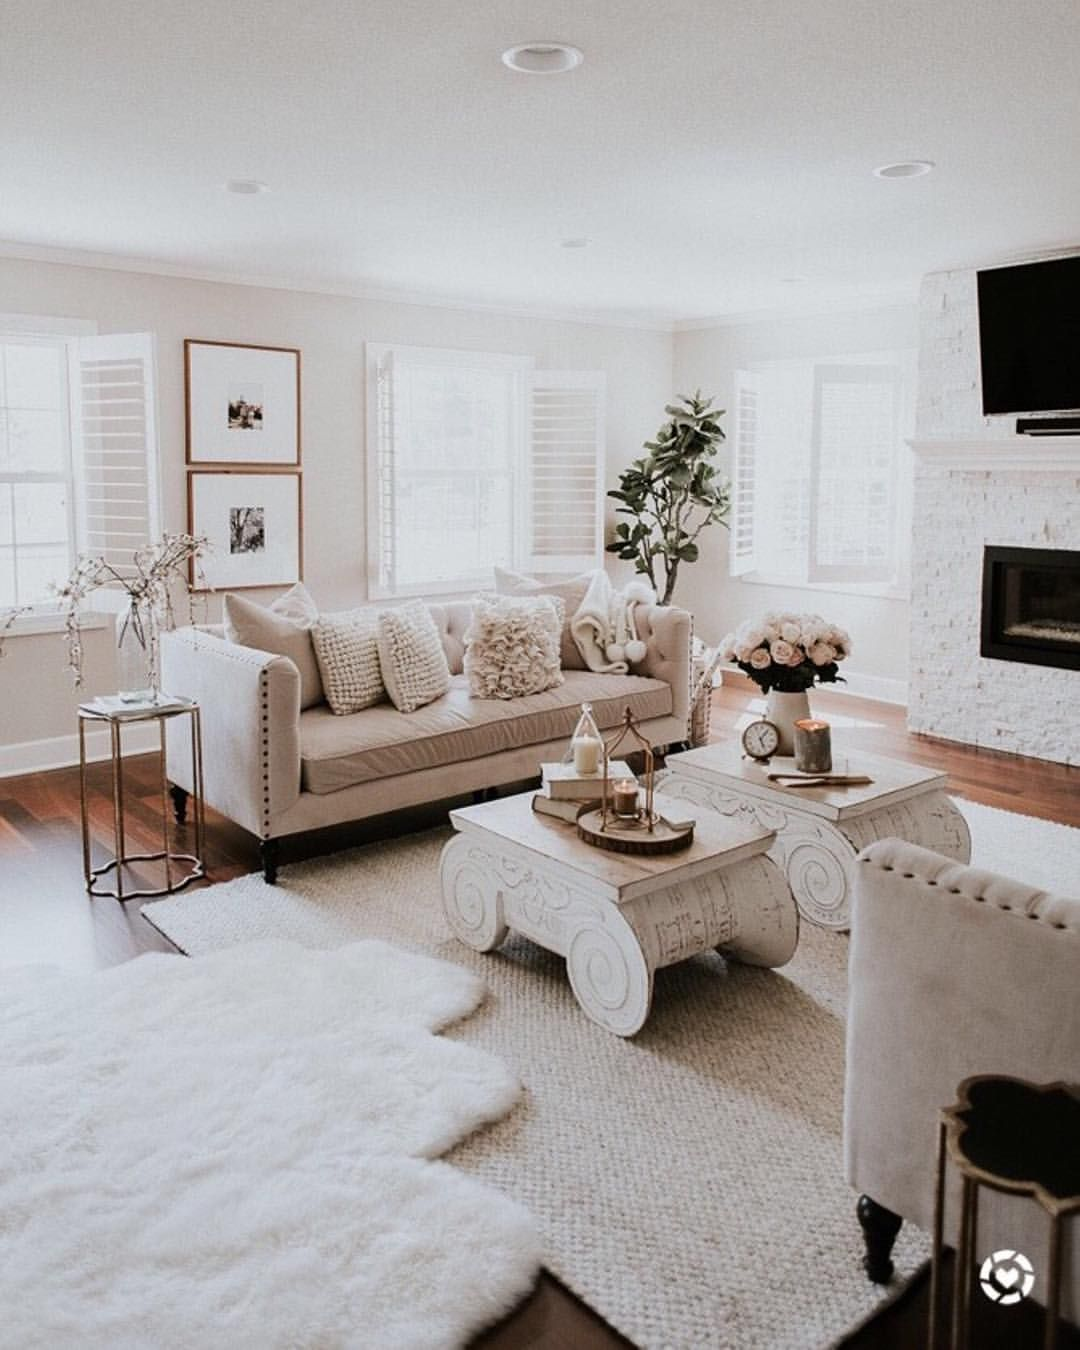 Pin by Iva Pavelić on living room inspiration | Pinterest | Living ...